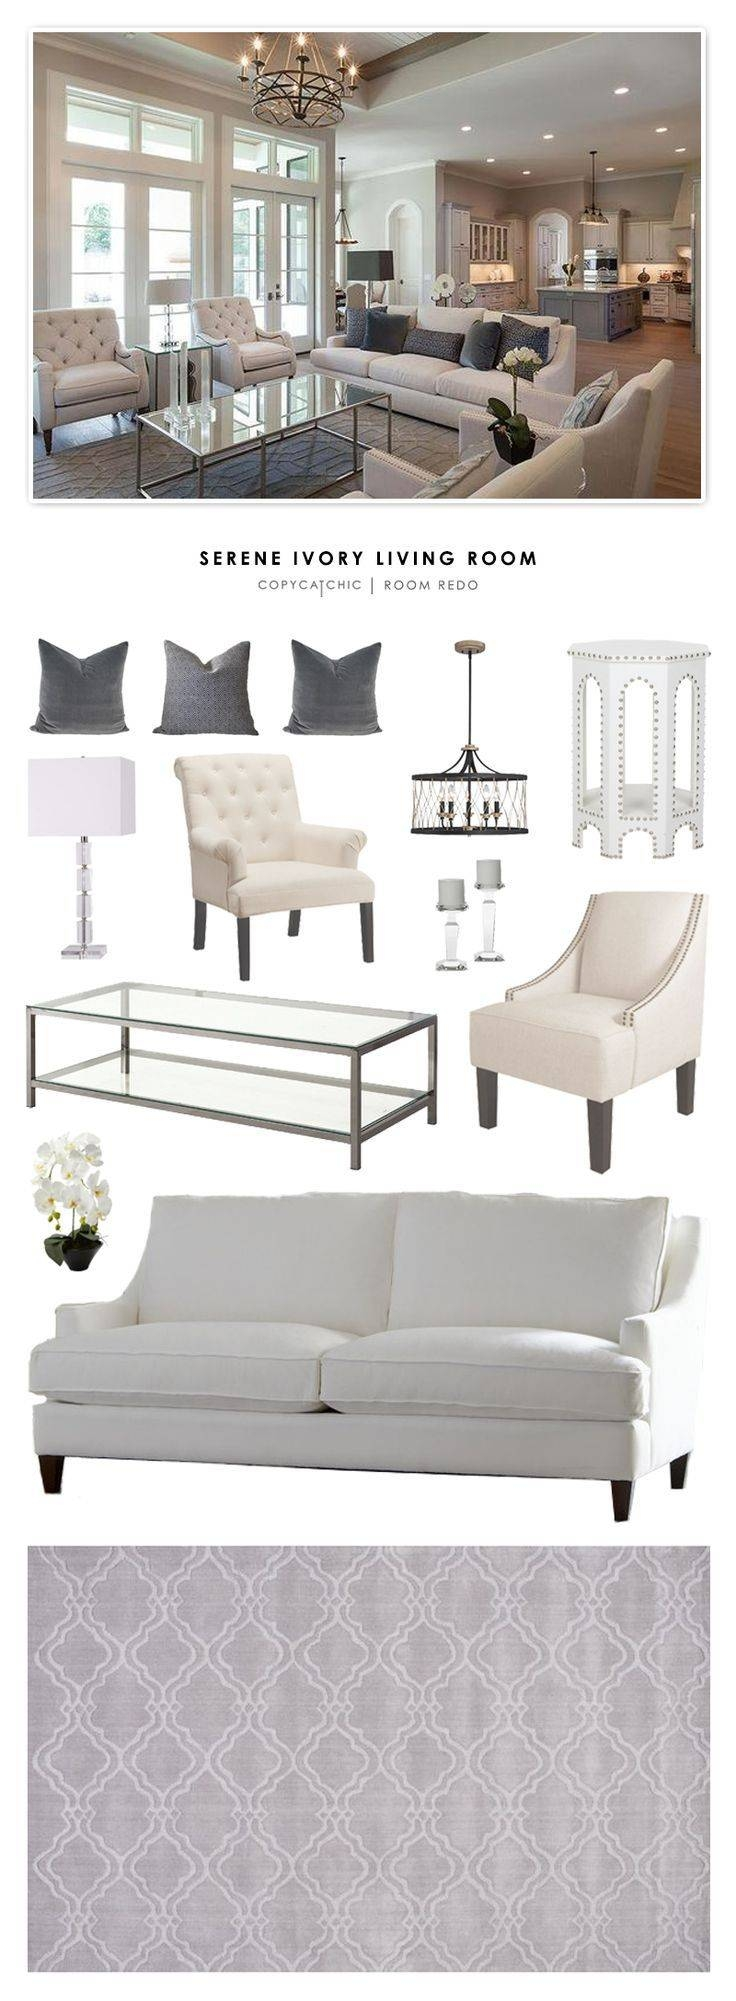 Best 25+ Cheap Couch Ideas On Pinterest | Couches For Cheap, Cheap intended for Cool Cheap Sofas (Image 2 of 30)